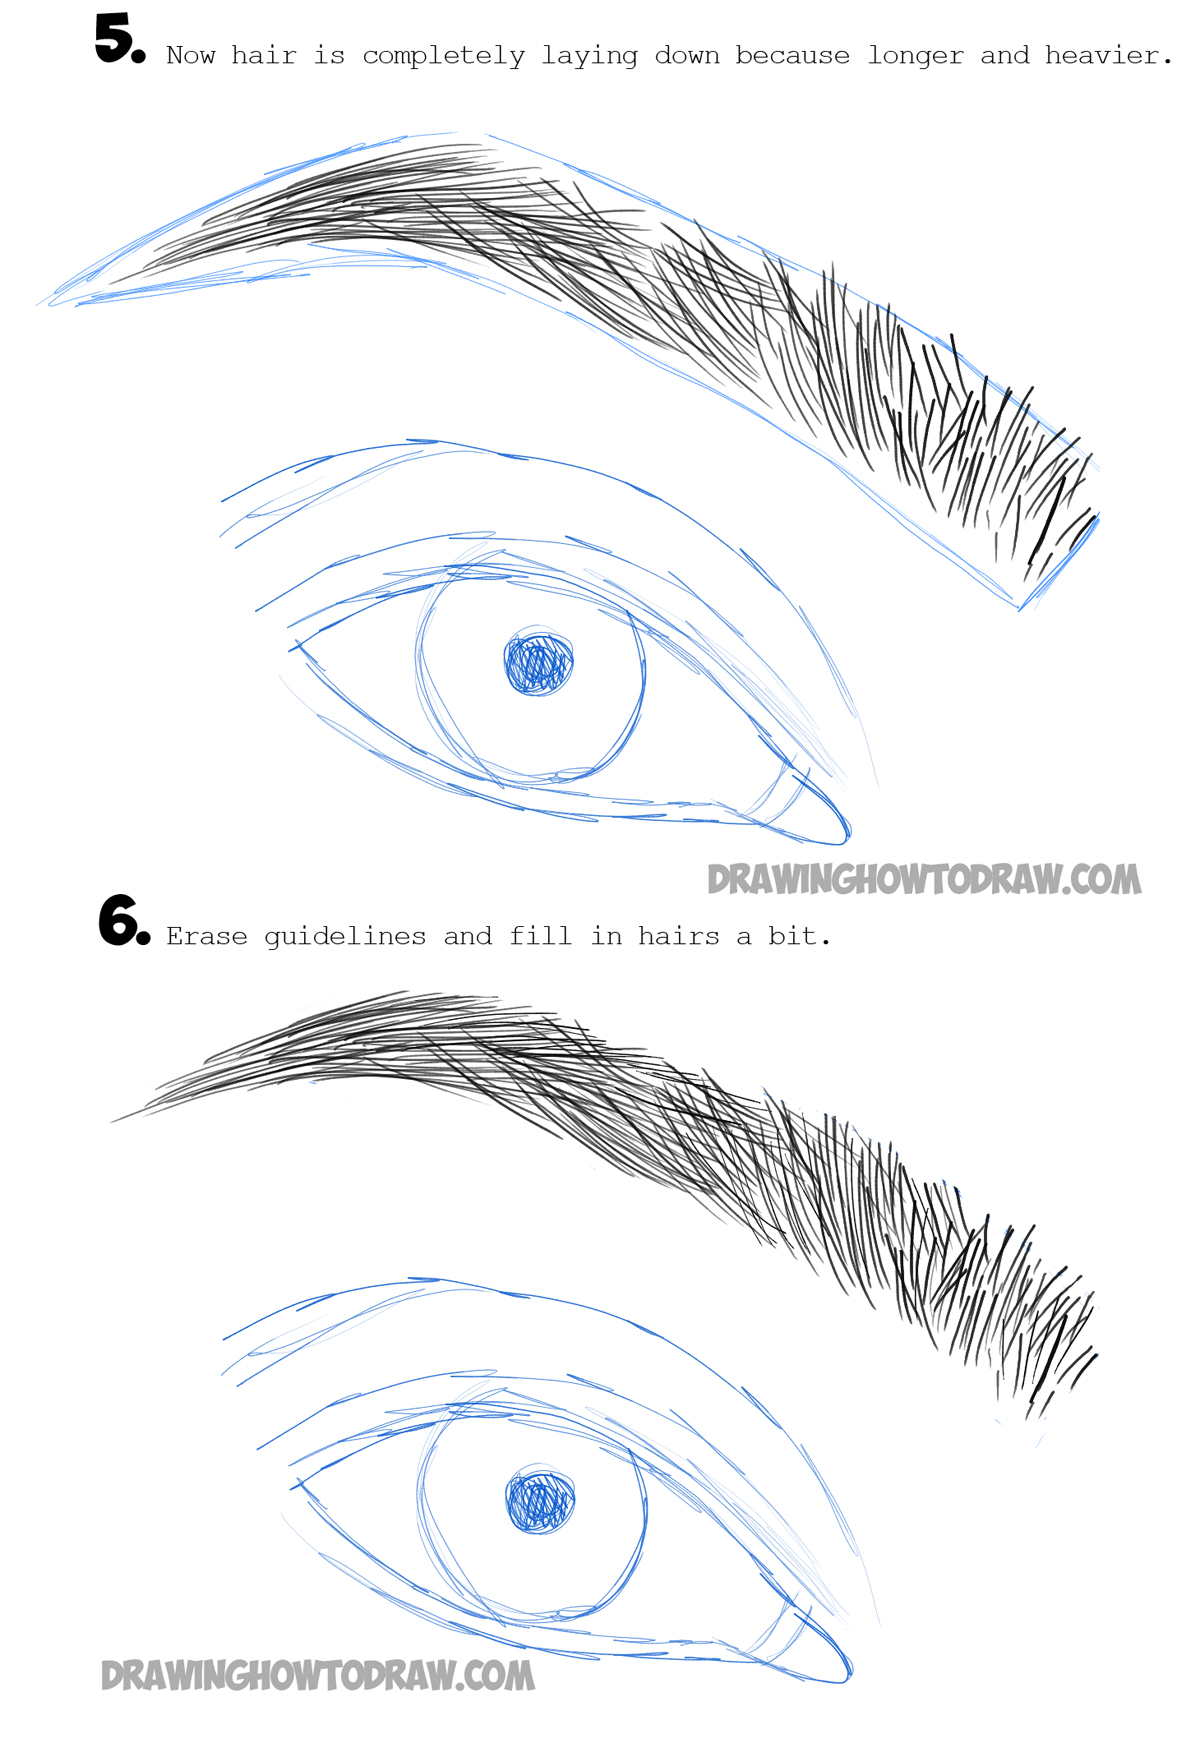 How to draw eye brows step by step drawing tutorial how for Learn drawing online step by step